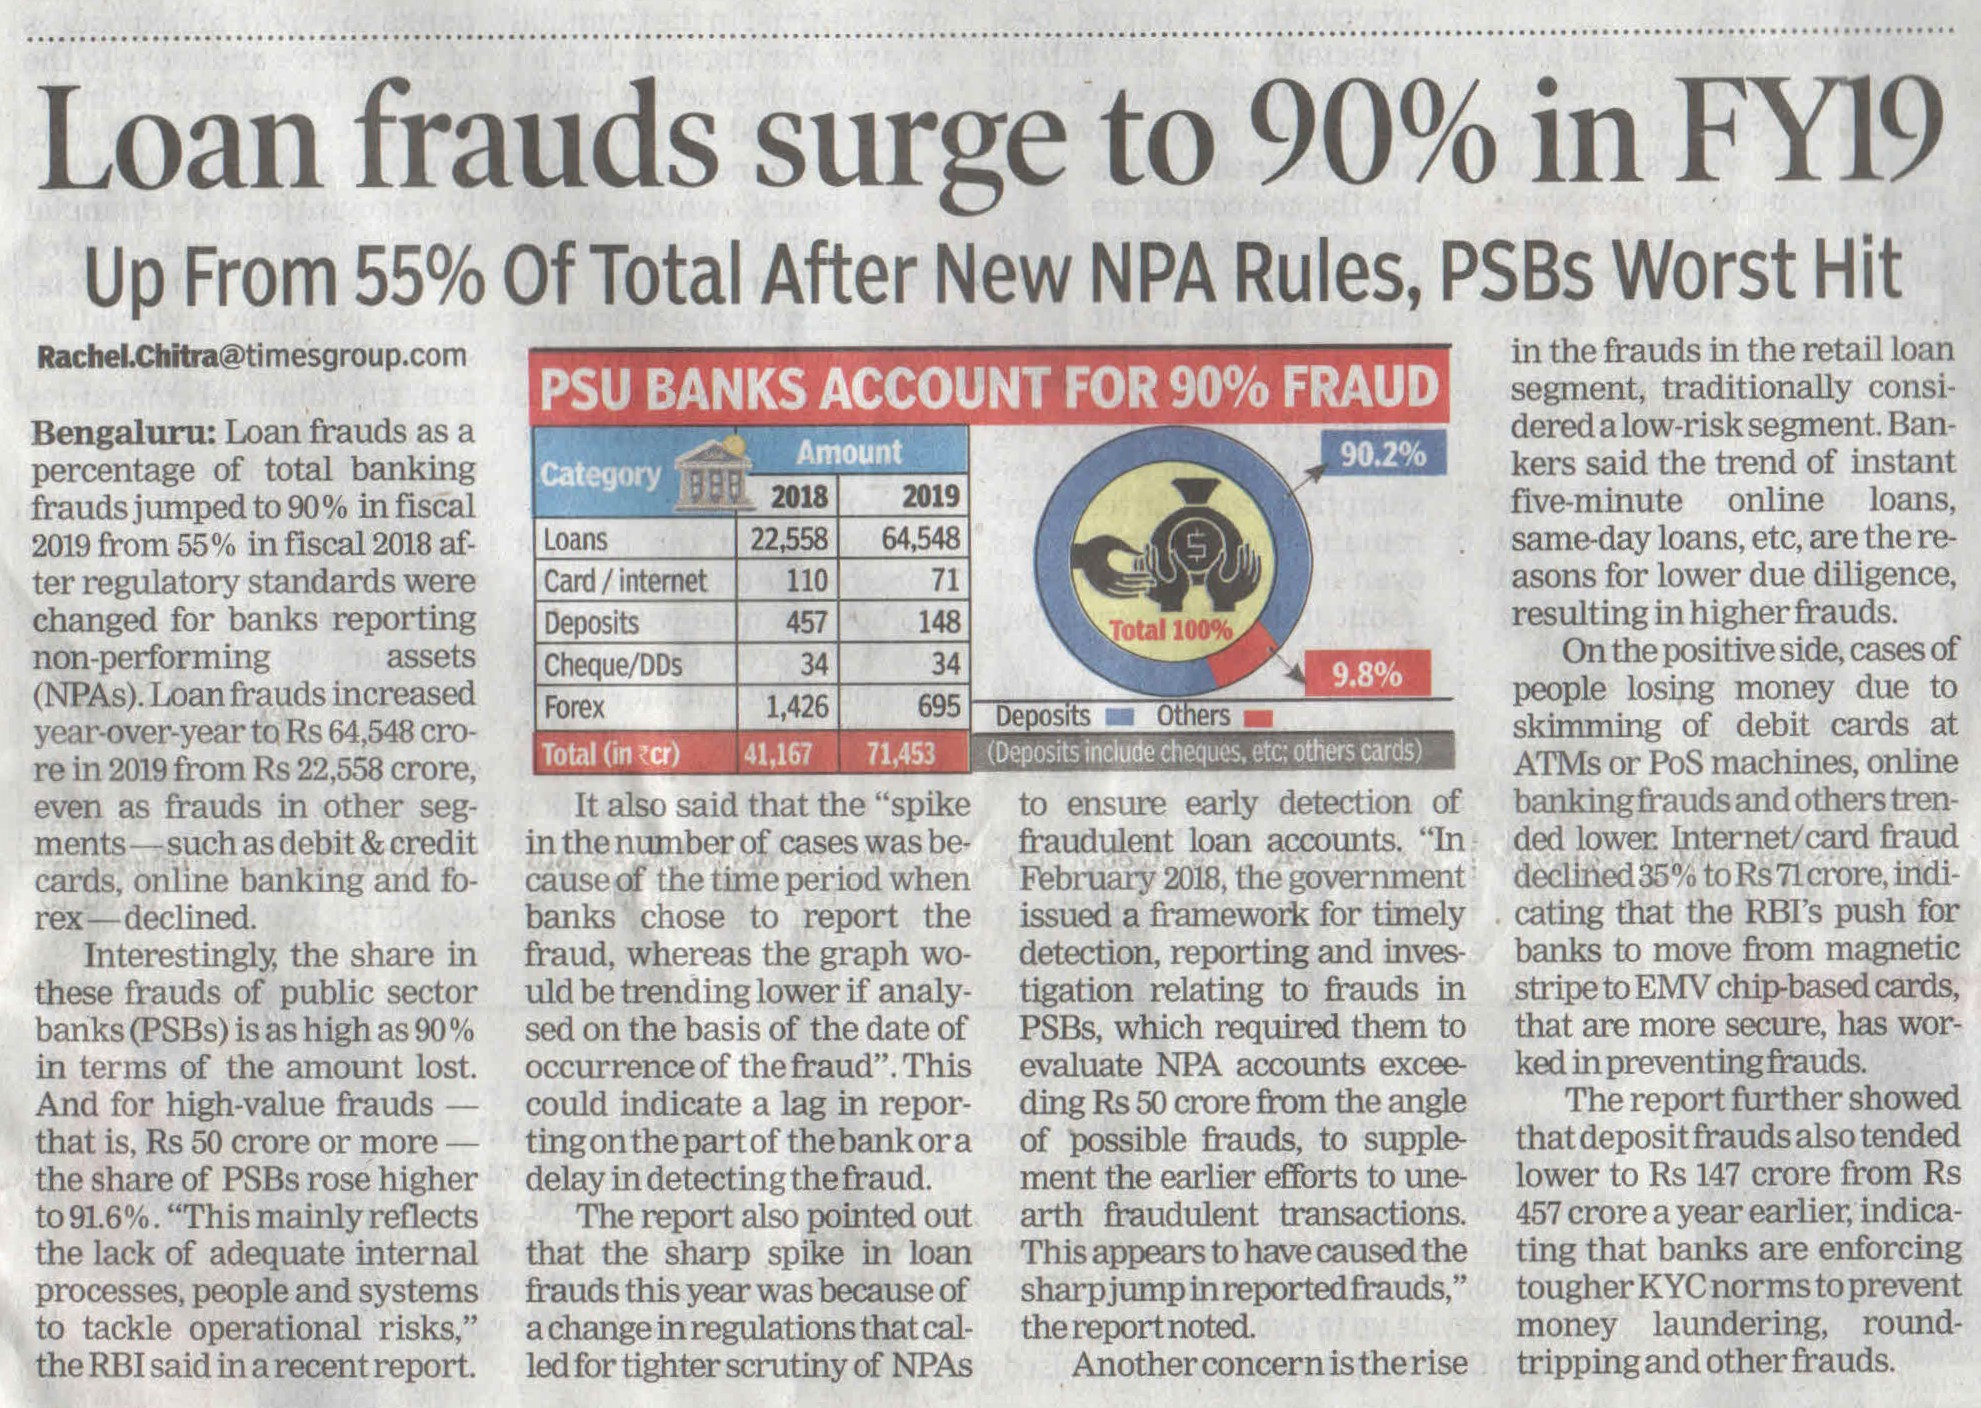 Loan frauds surge to 90% in FY19